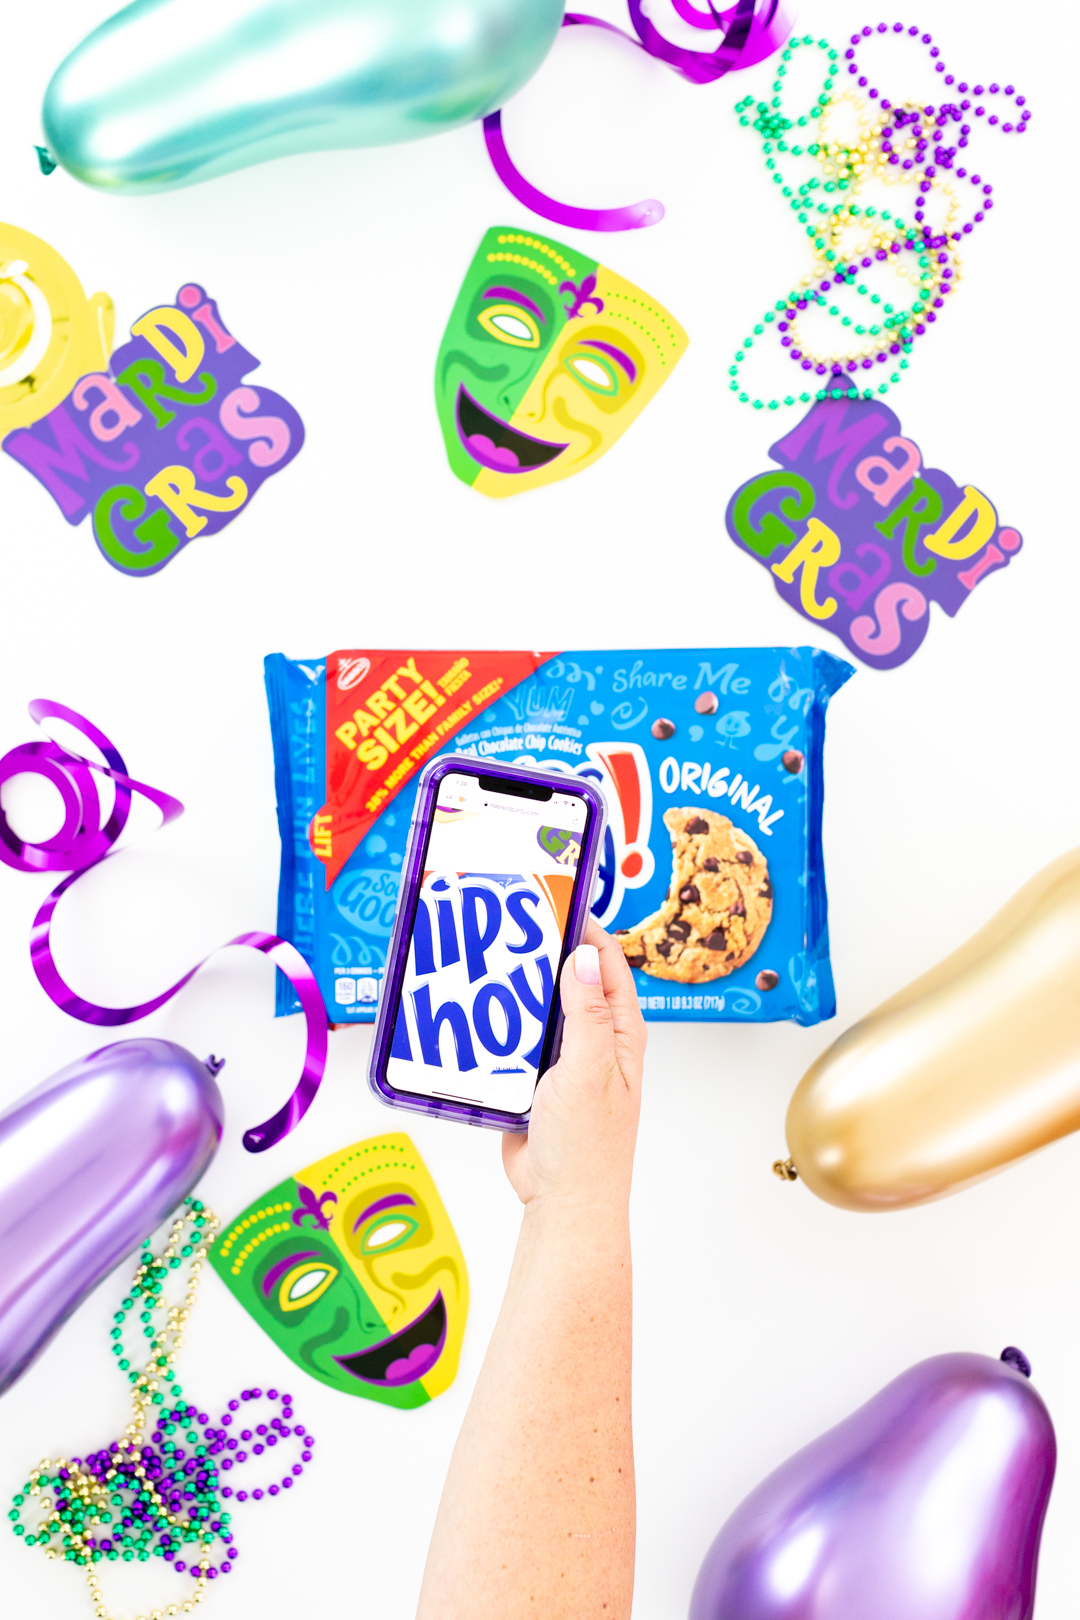 Scanning package of Chips Ahoy! with phone